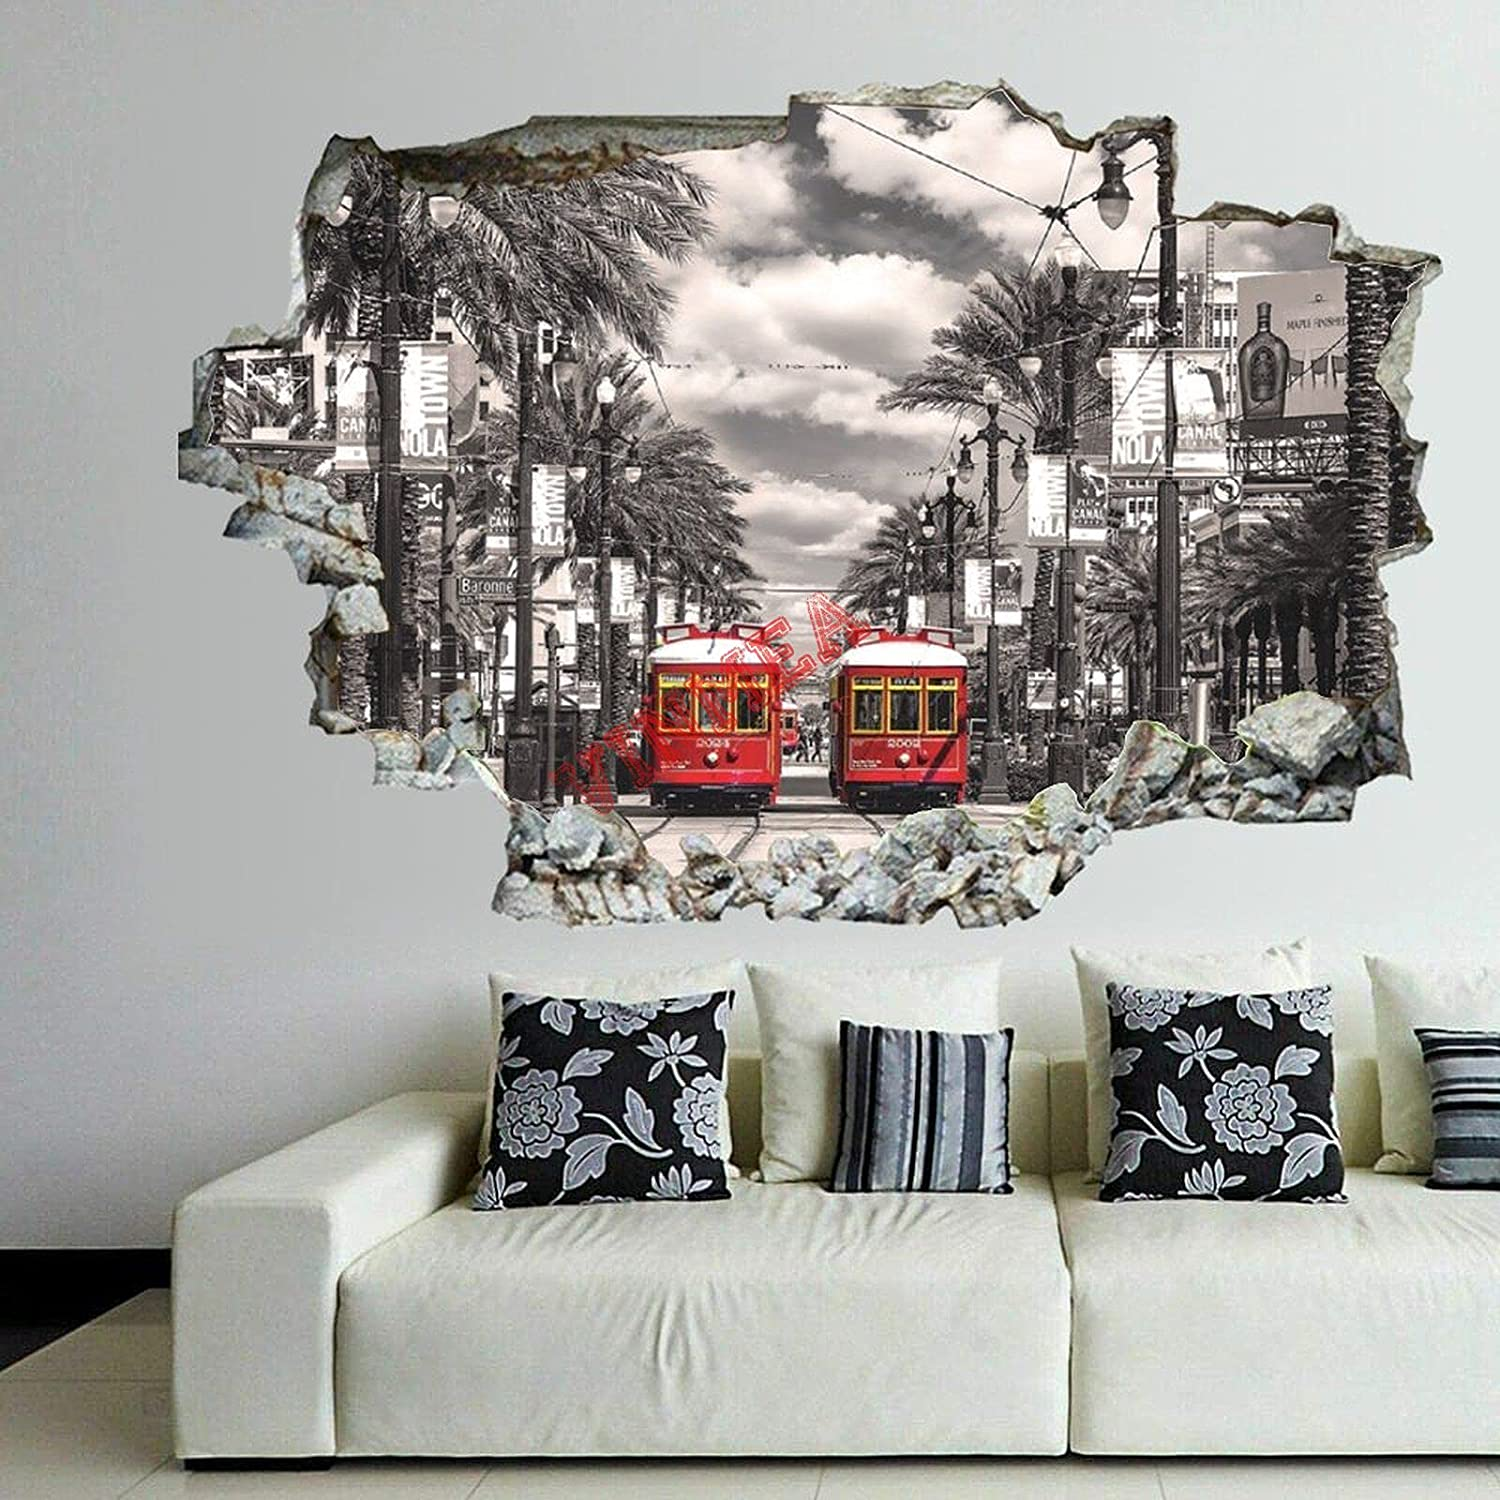 3D Break The Credence Wall Stickers Mu Decals New Al sold out. Orleans-Streetcars